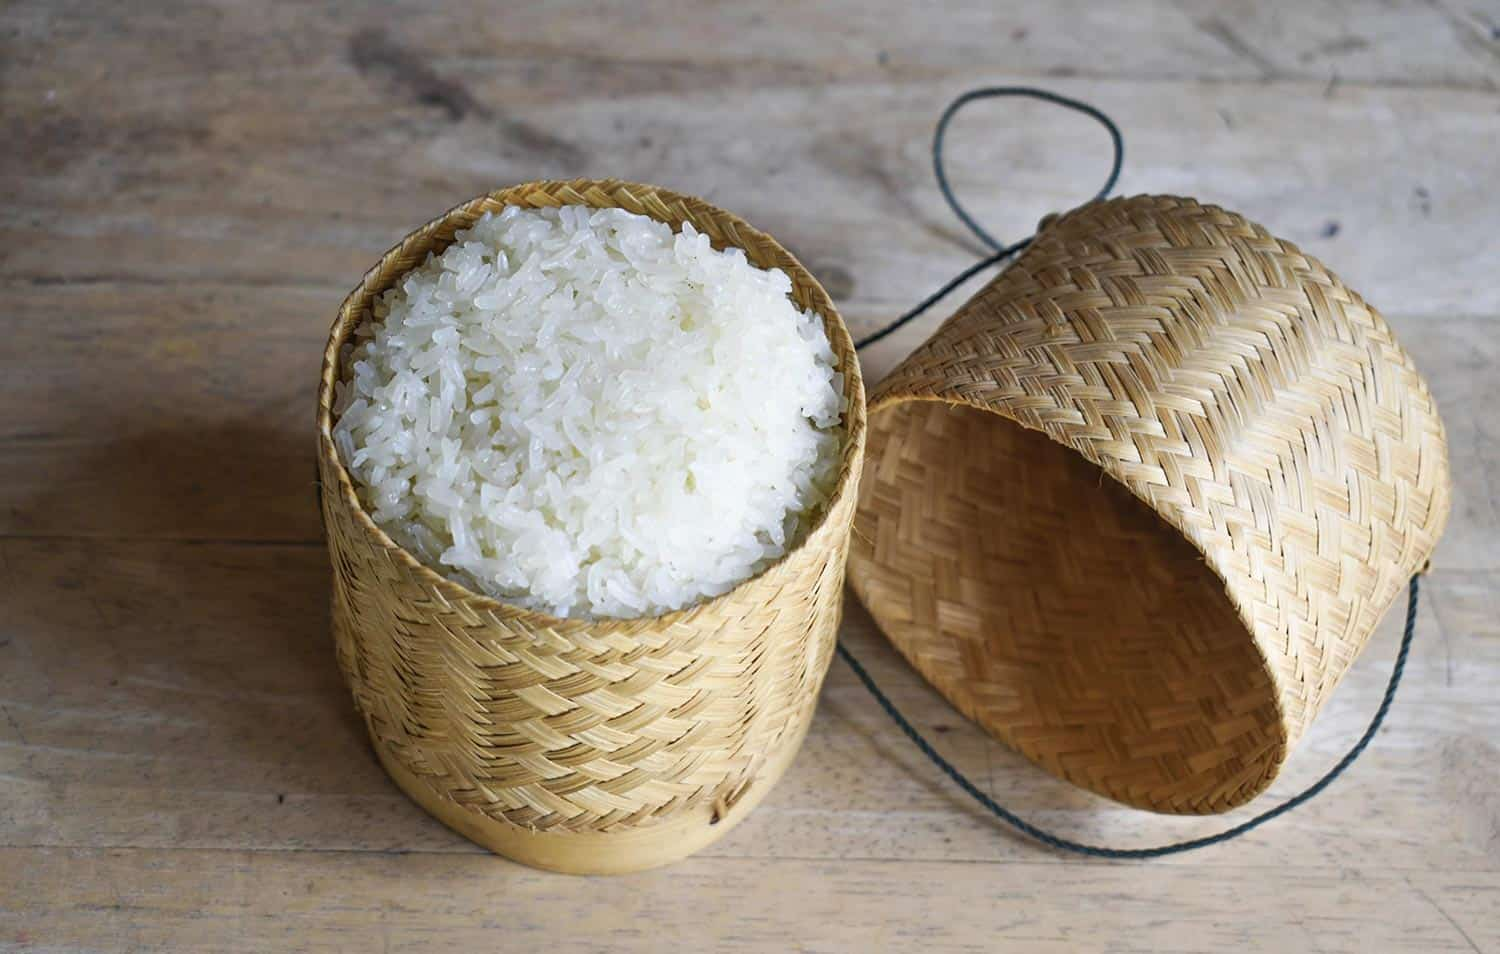 sticky rice basket and server considerations when buying